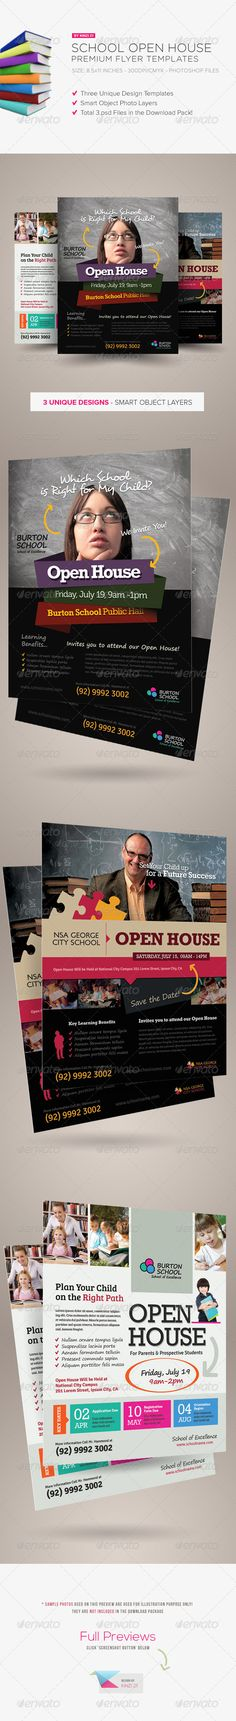 School Open House Flyers - get the template sourcefiles here: http://graphicriver.net/item/school-open-house-flyers/5212948?r=kinzi21